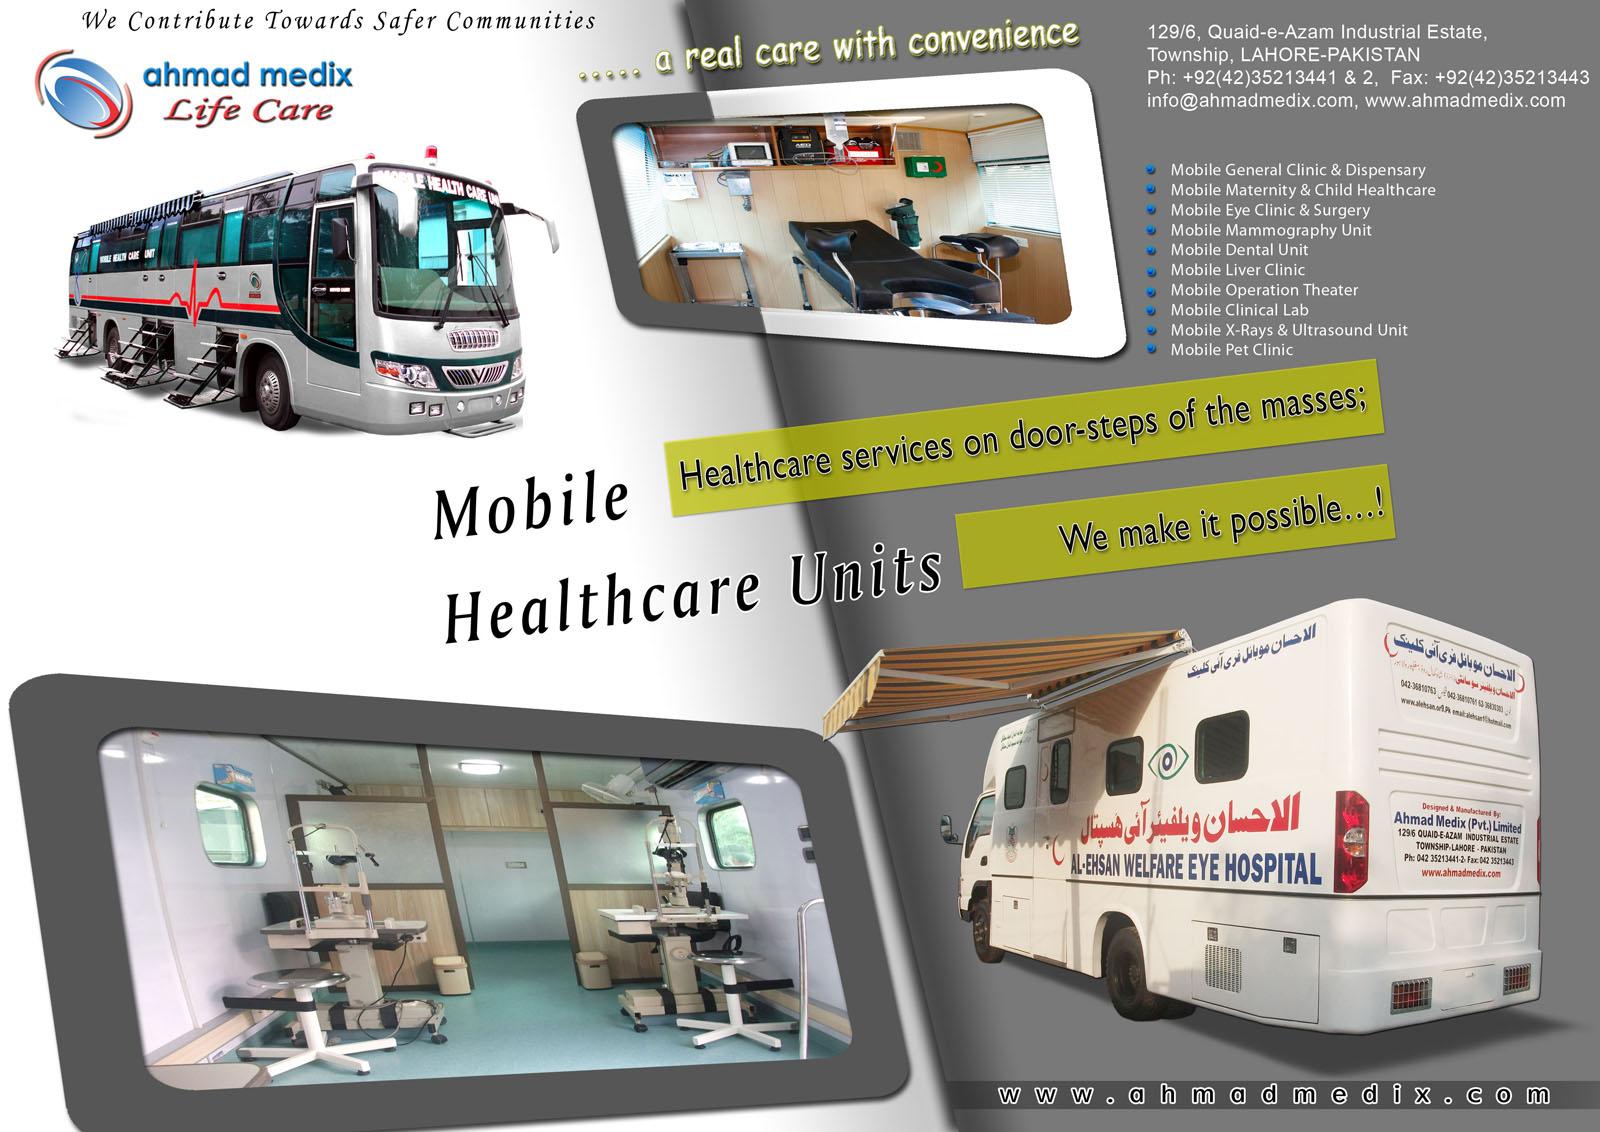 Ahmad Medix (Life Care): mobile clinic on Truck